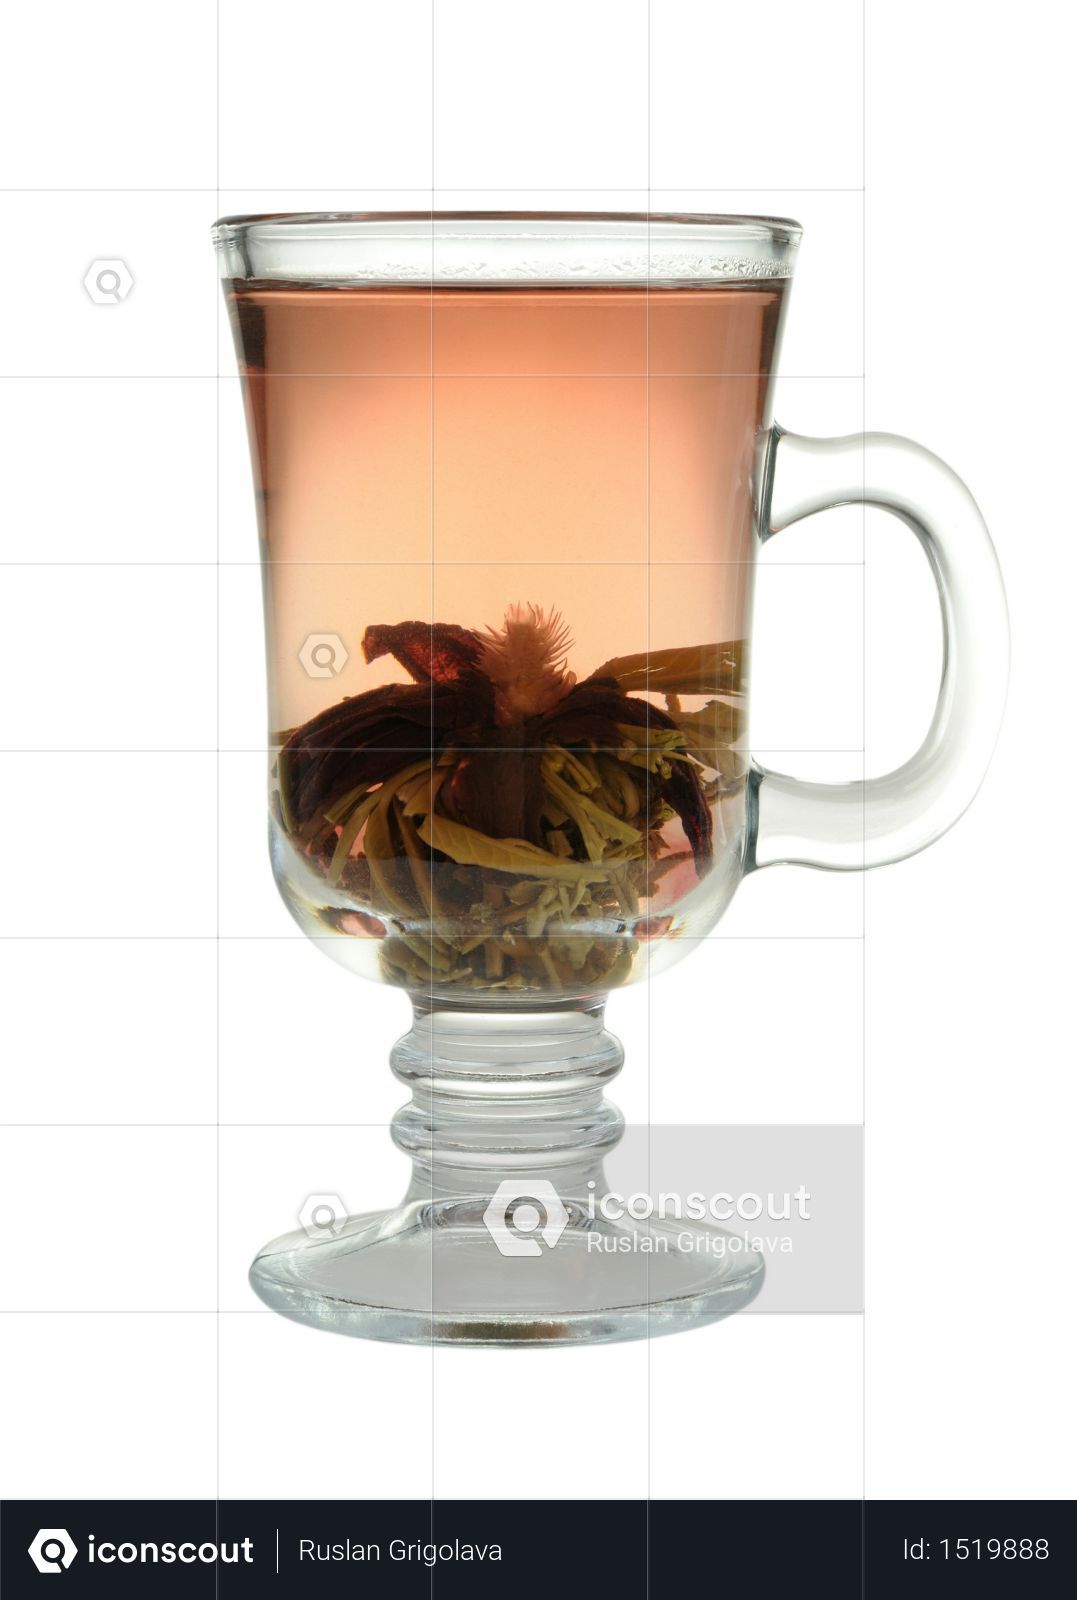 Premium Green Tea In A Cup Isolated On White Background Photo Download In Png Jpg Format Premium Green Tea Green Tea White Background Photo